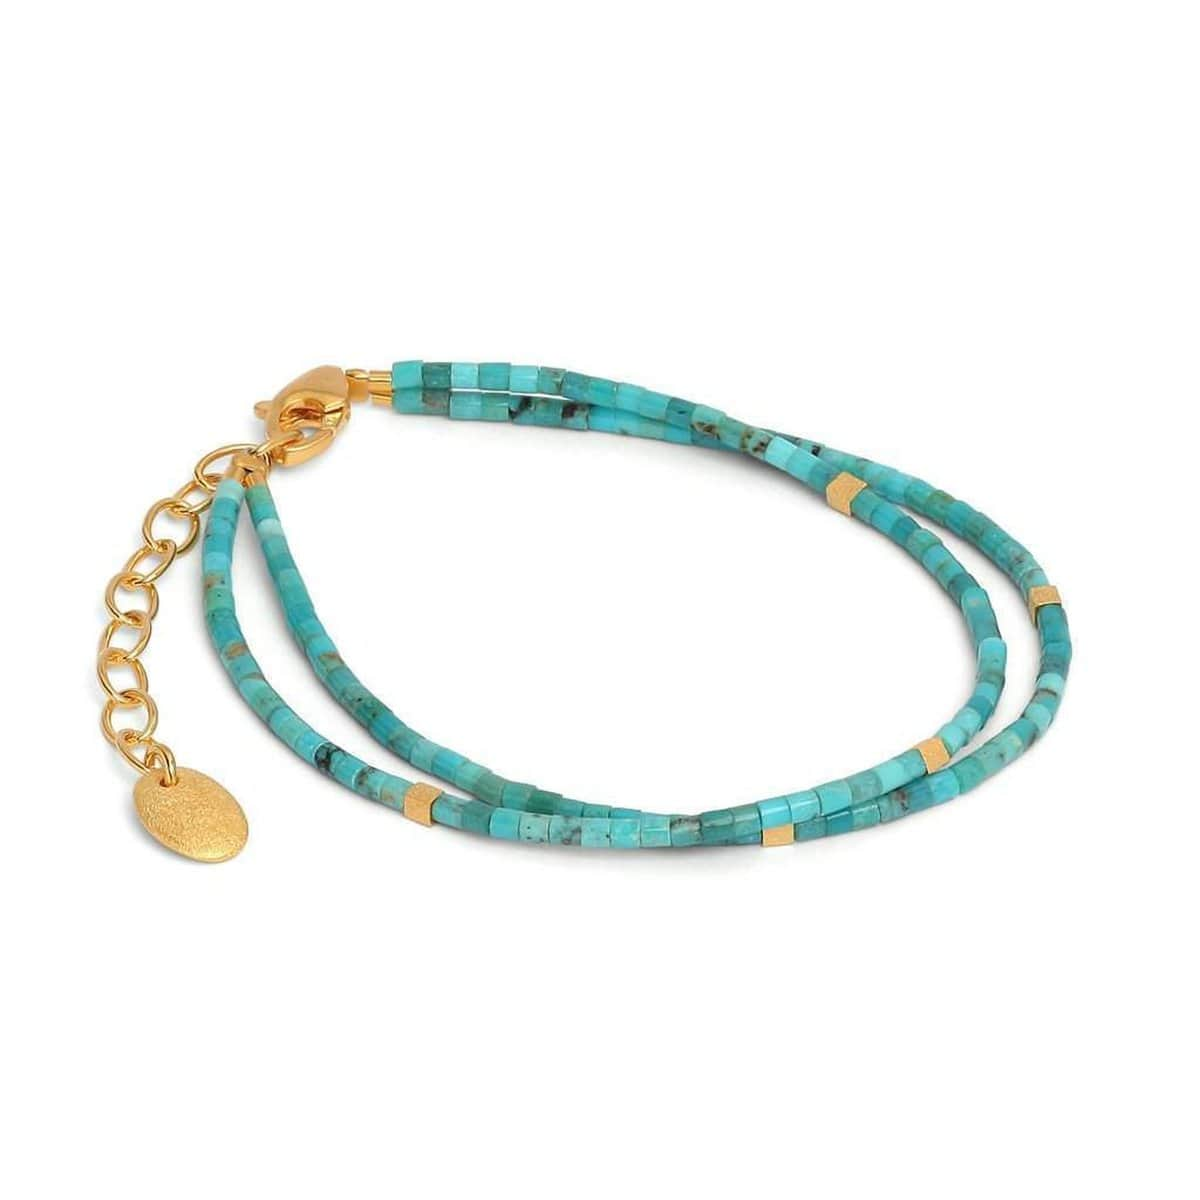 Yaquina Turquoise Bracelet - 82074256-Bernd Wolf-Renee Taylor Gallery